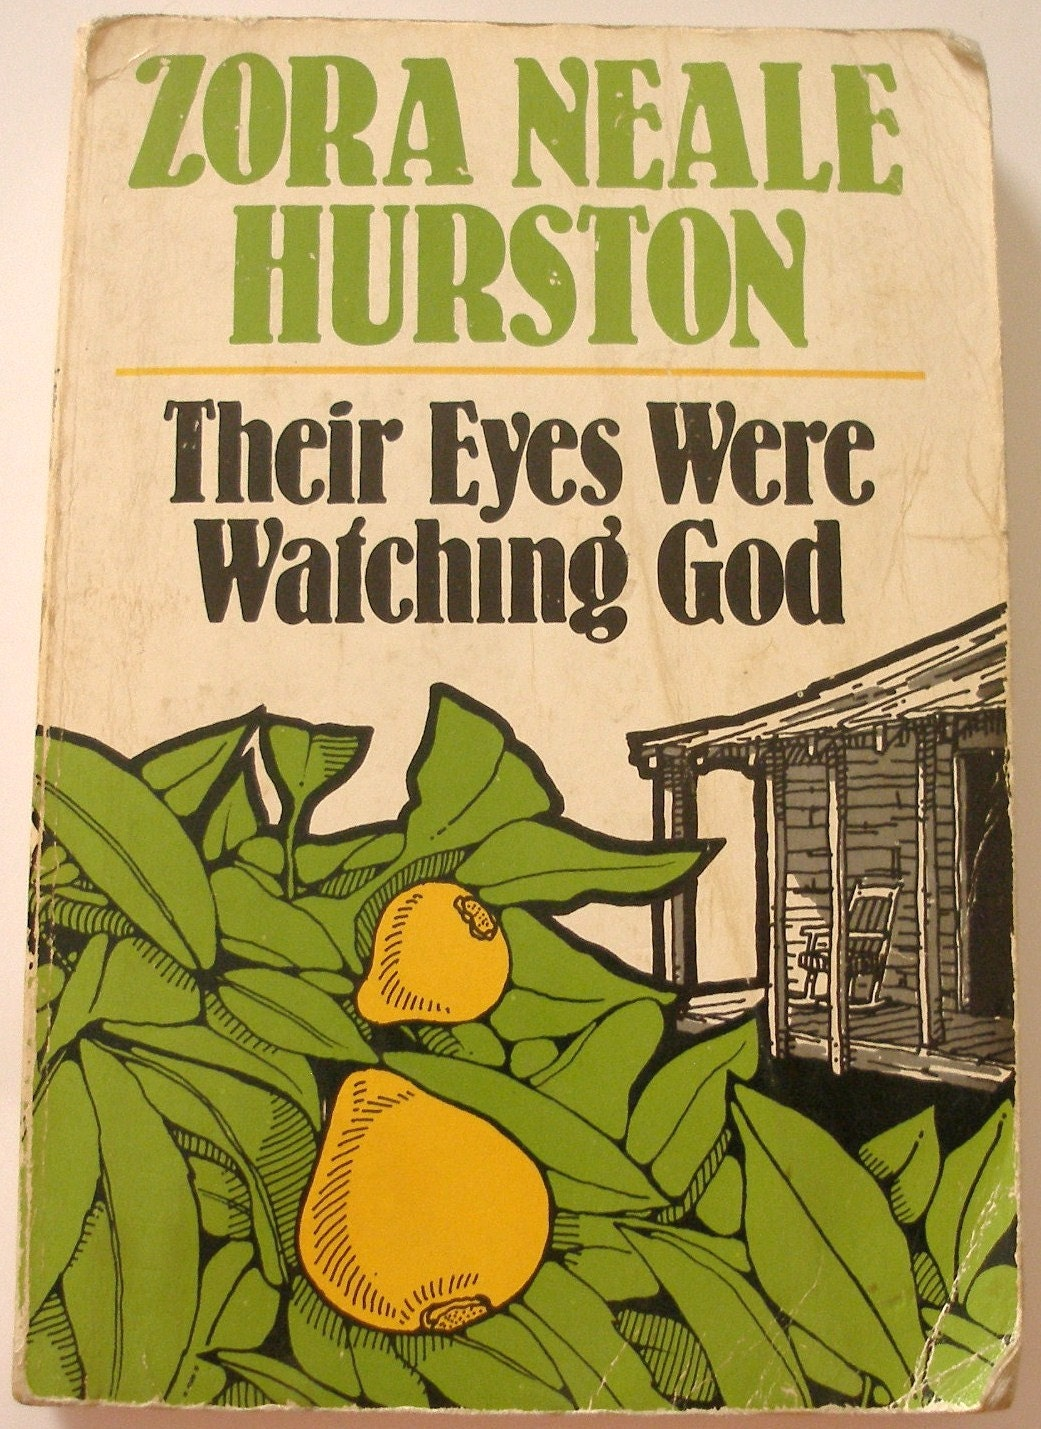 a journey of love in their eyes were watching god by zora neil hurston Free essay: in the novel their eyes were watching god, janie is a beautiful  african-american  true love in their eyes were watching god by zora neale  hurston  like many people, she begins her journey not knowing what love is.